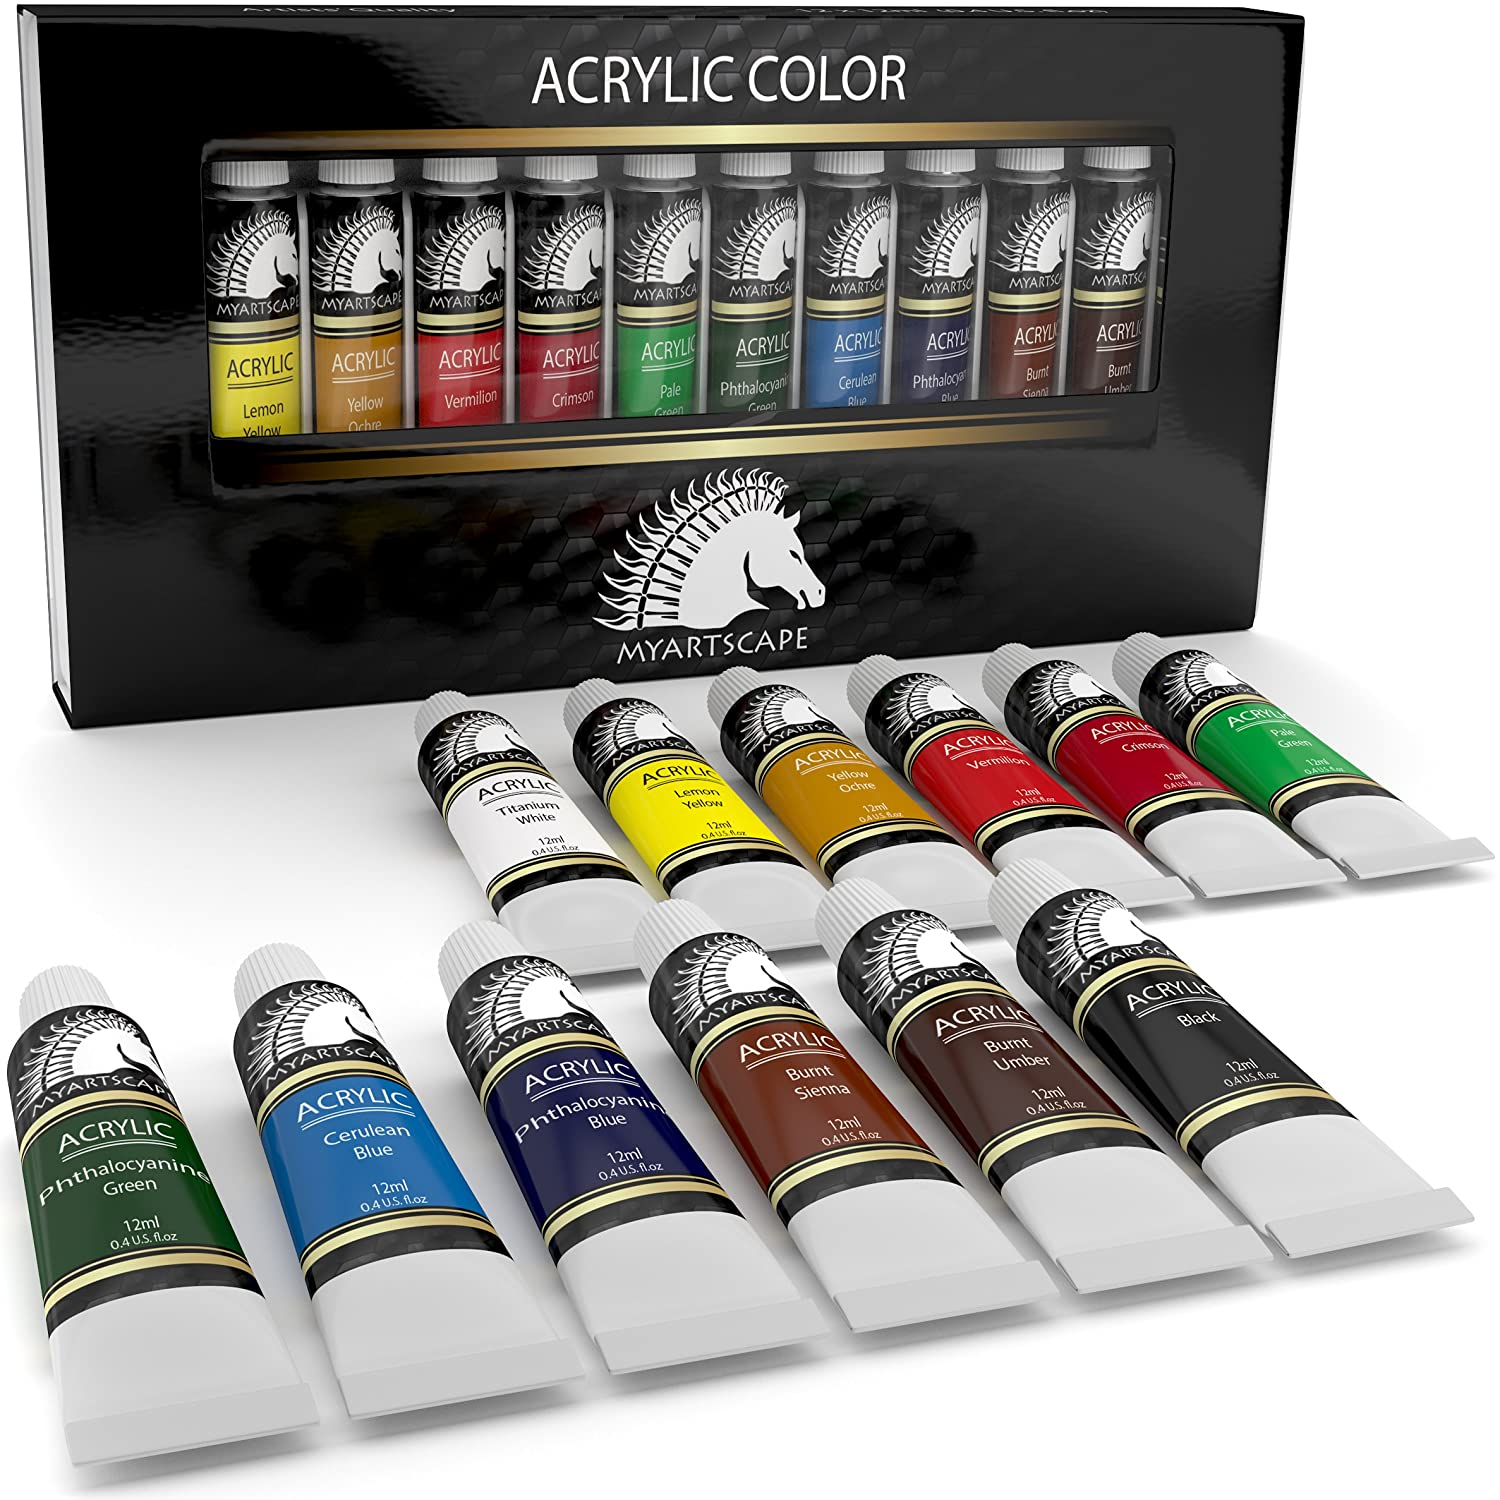 Amazon.com: Acrylic Paint Set - Artist Quality Paints for Painting ...